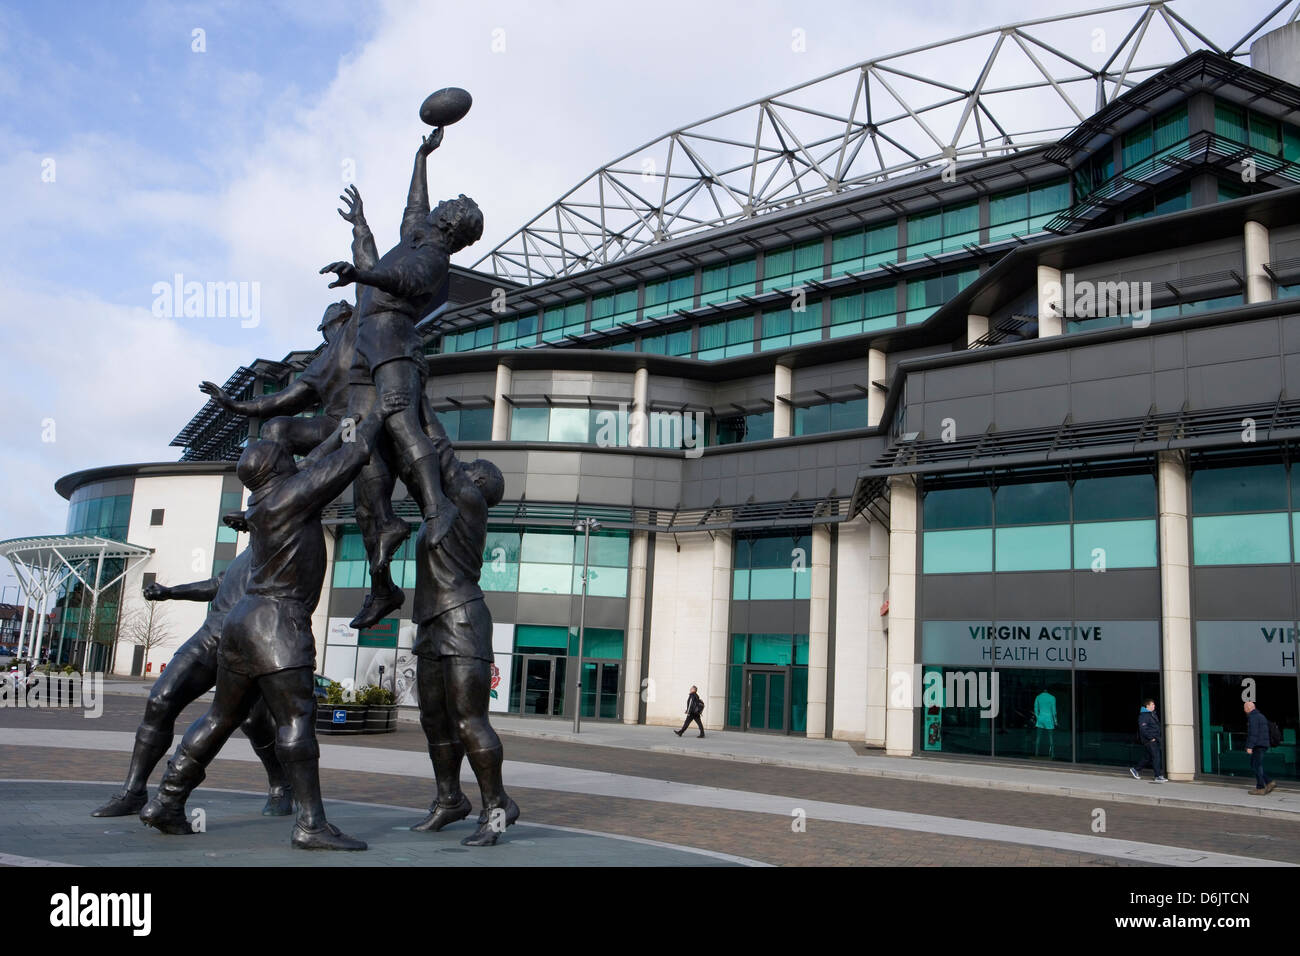 twickenham rugby stadium and rugby sculpture - Stock Image